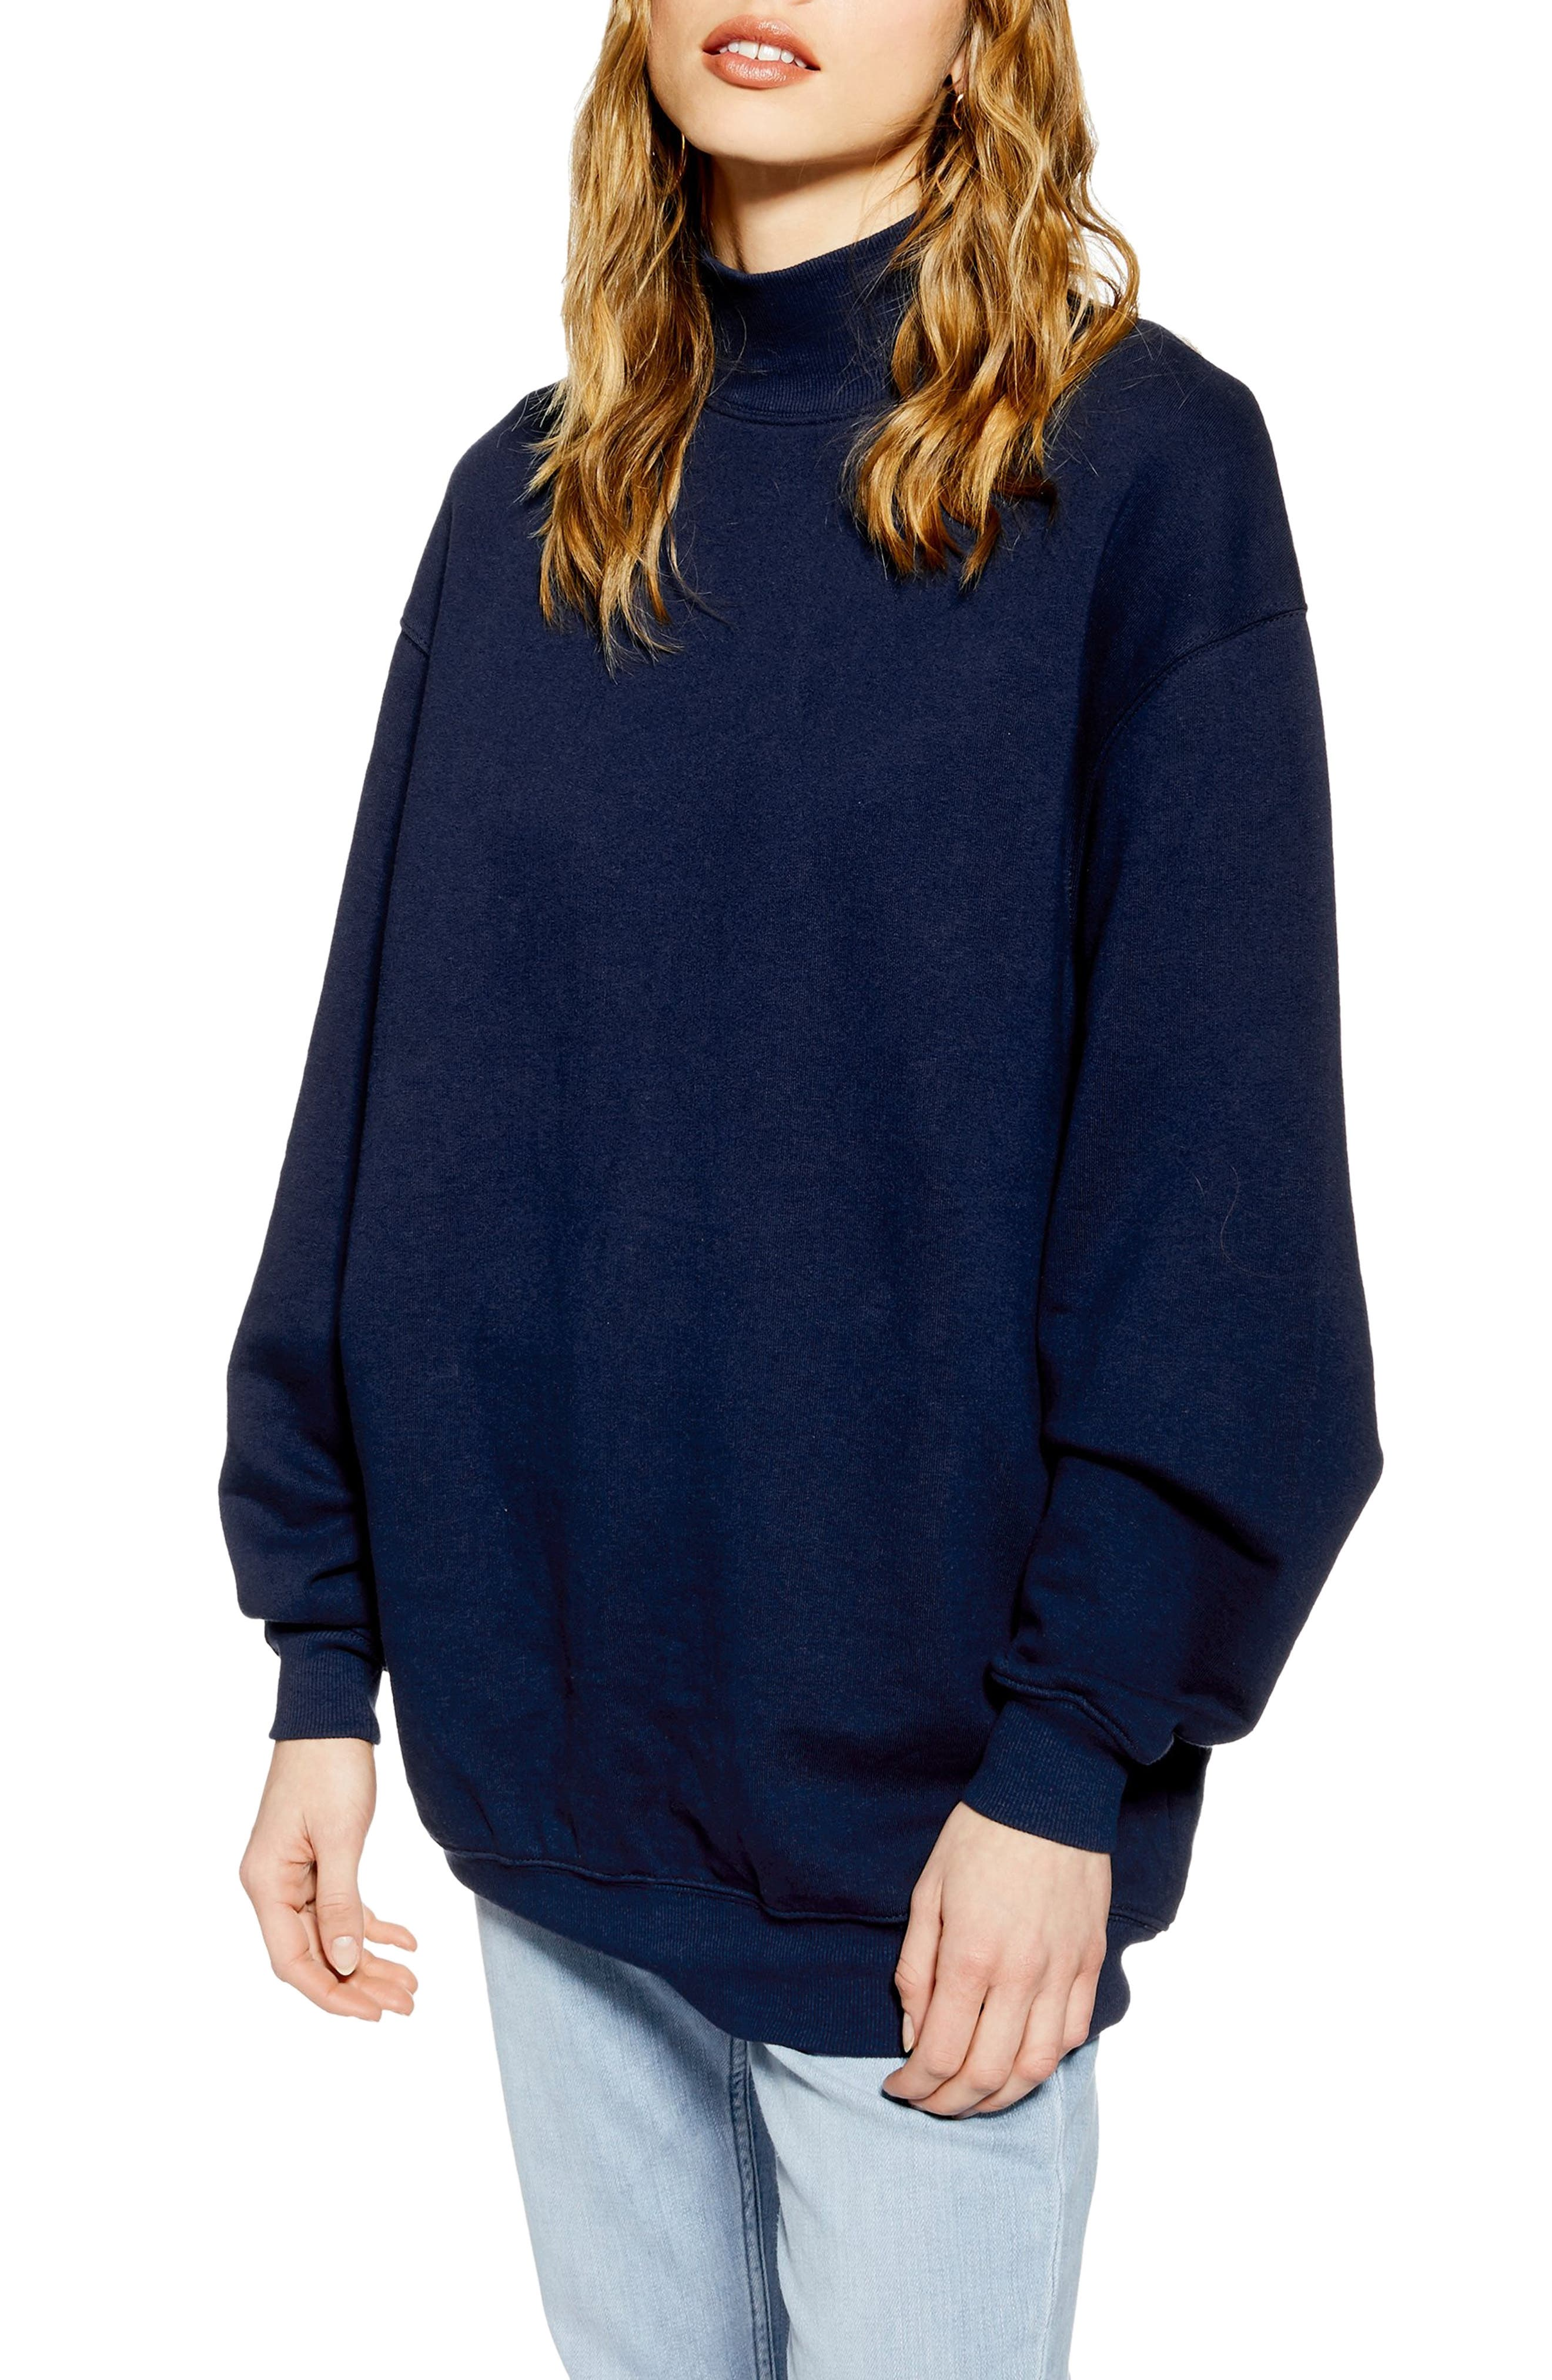 Topshop Oversized Mock Neck Sweatshirt